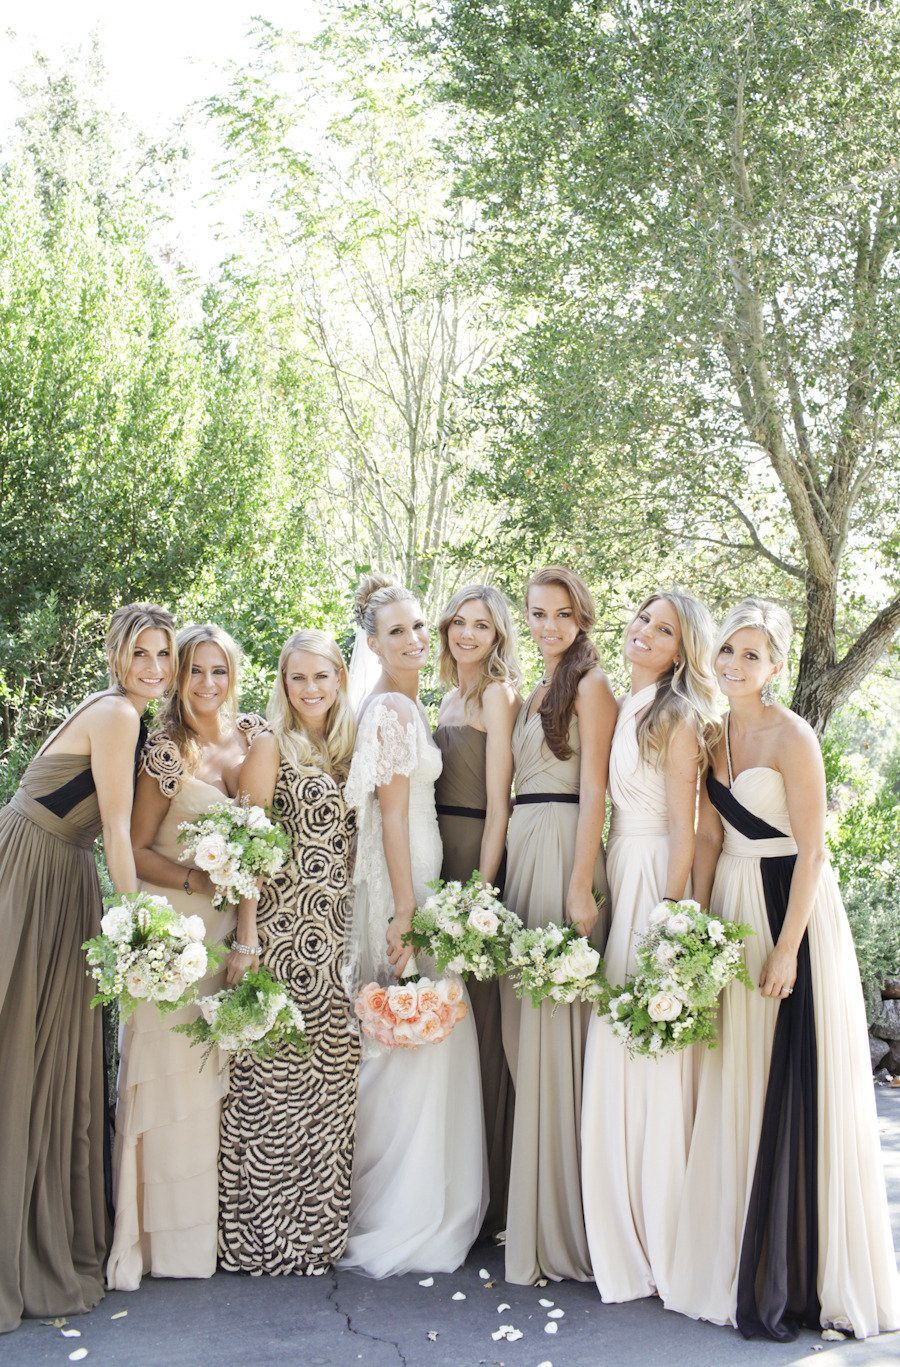 Mismatched bridesmaid dress ideas for fall weddings dress ideas mismatched bridesmaid dress ideas for fall weddings dress ideas weddings and wedding ombrellifo Image collections